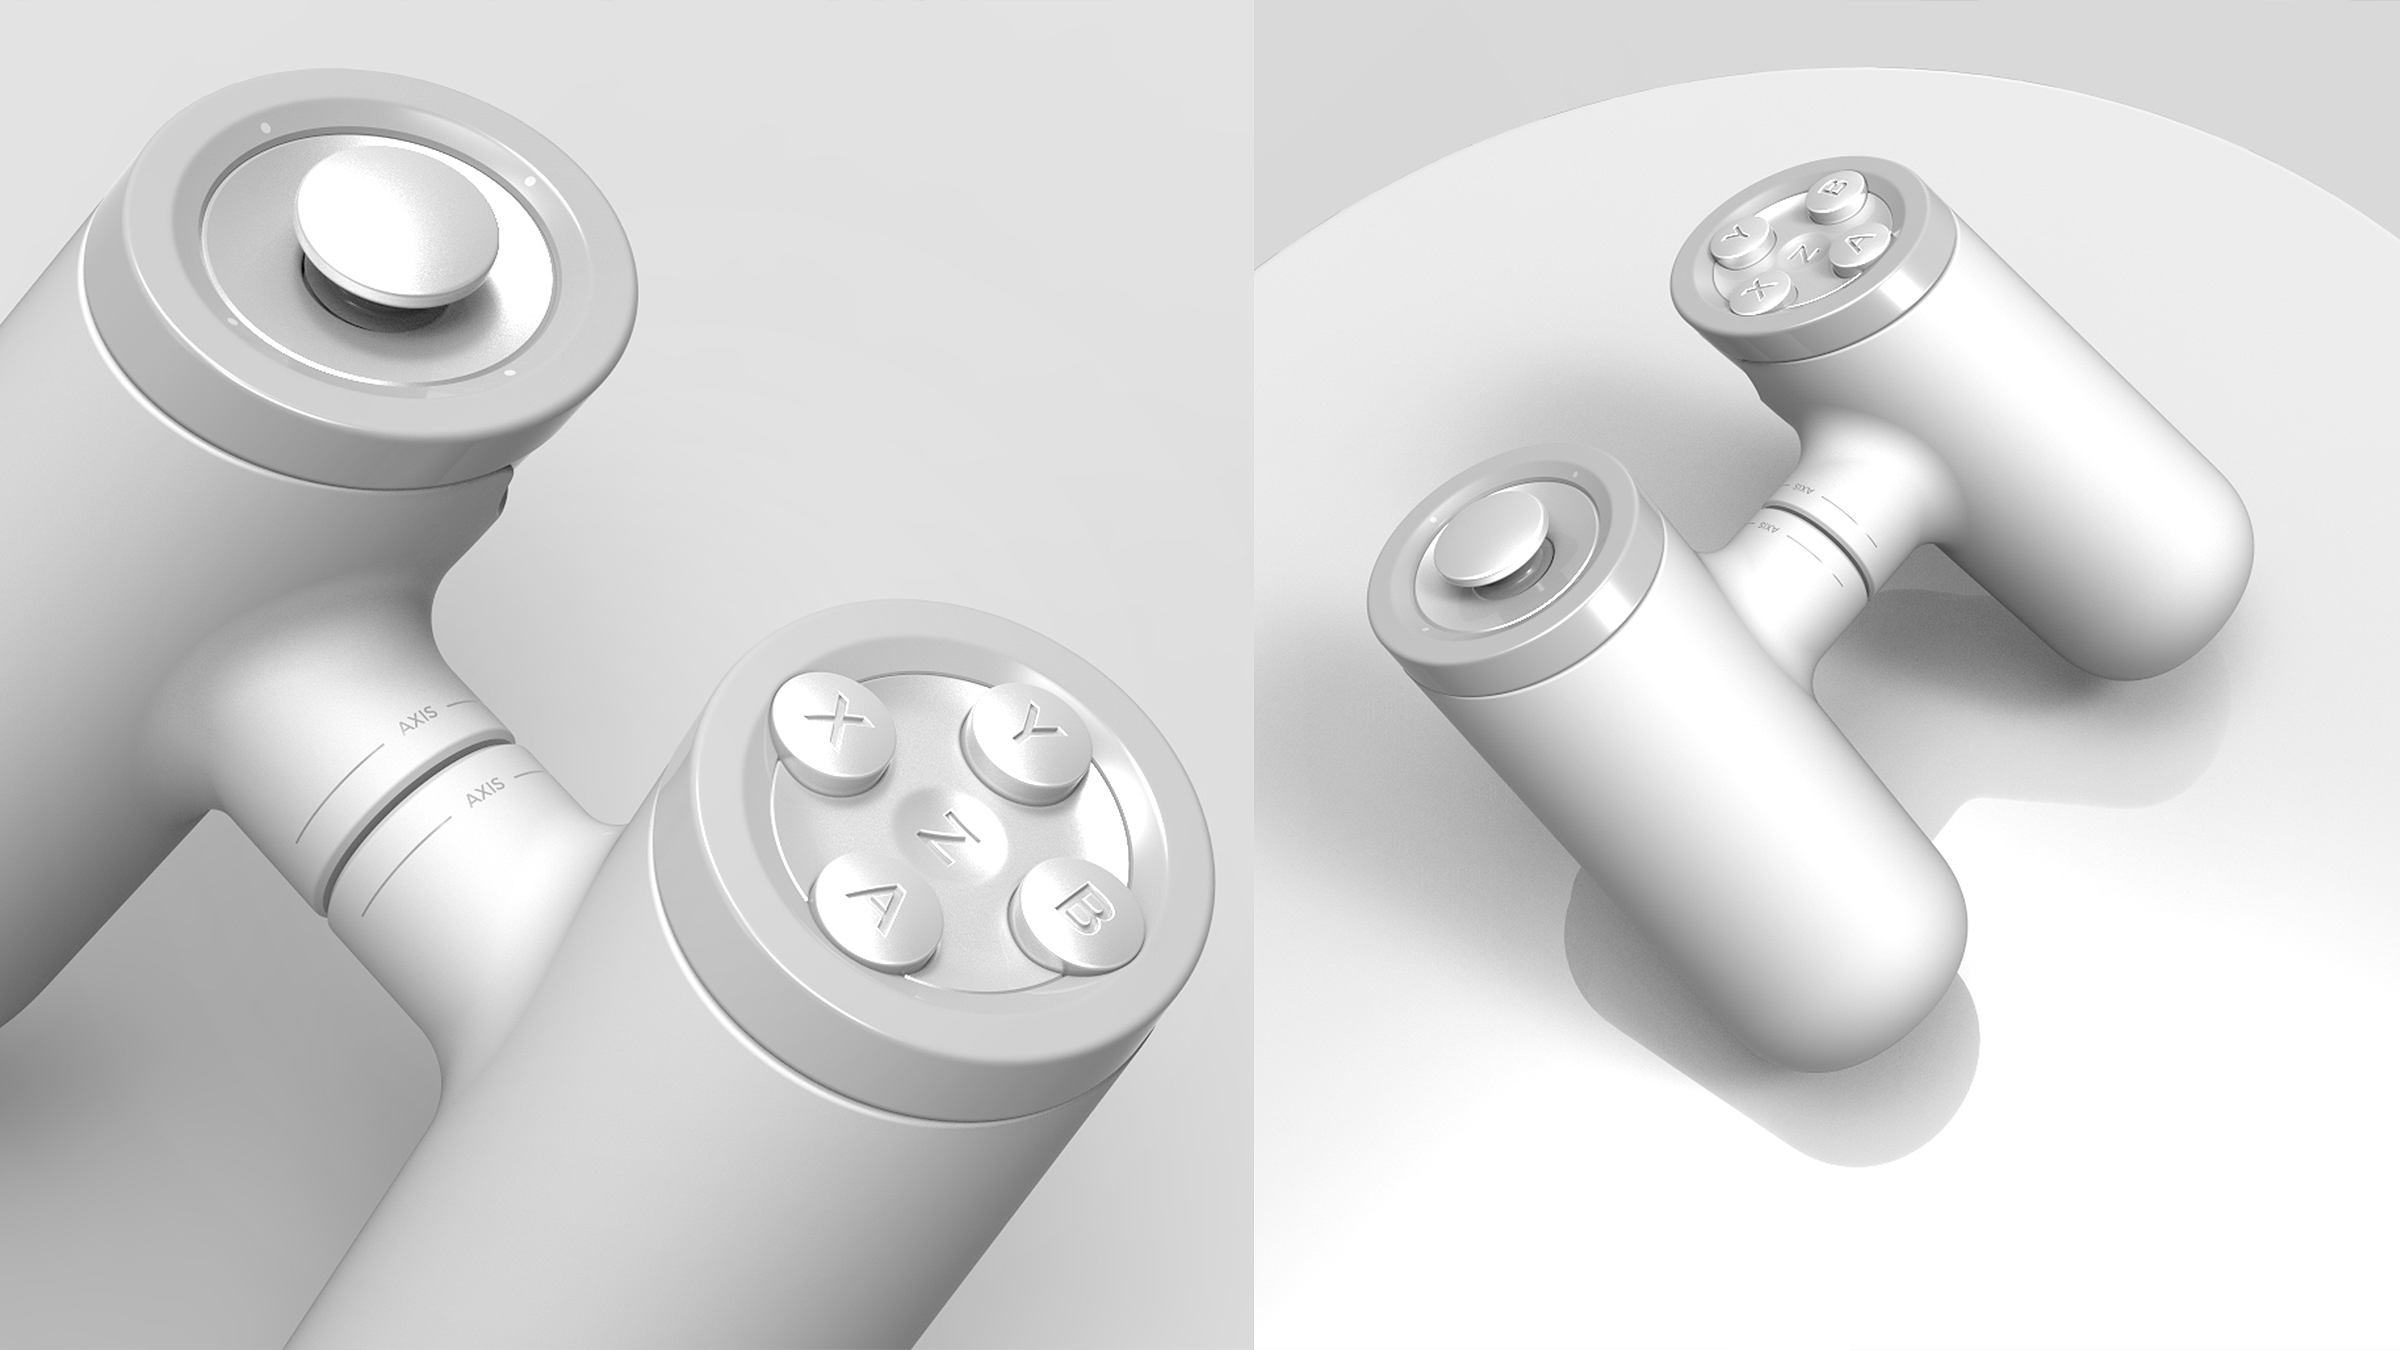 White color-way of axis controller. Top and Front View. Copyright Creative Session